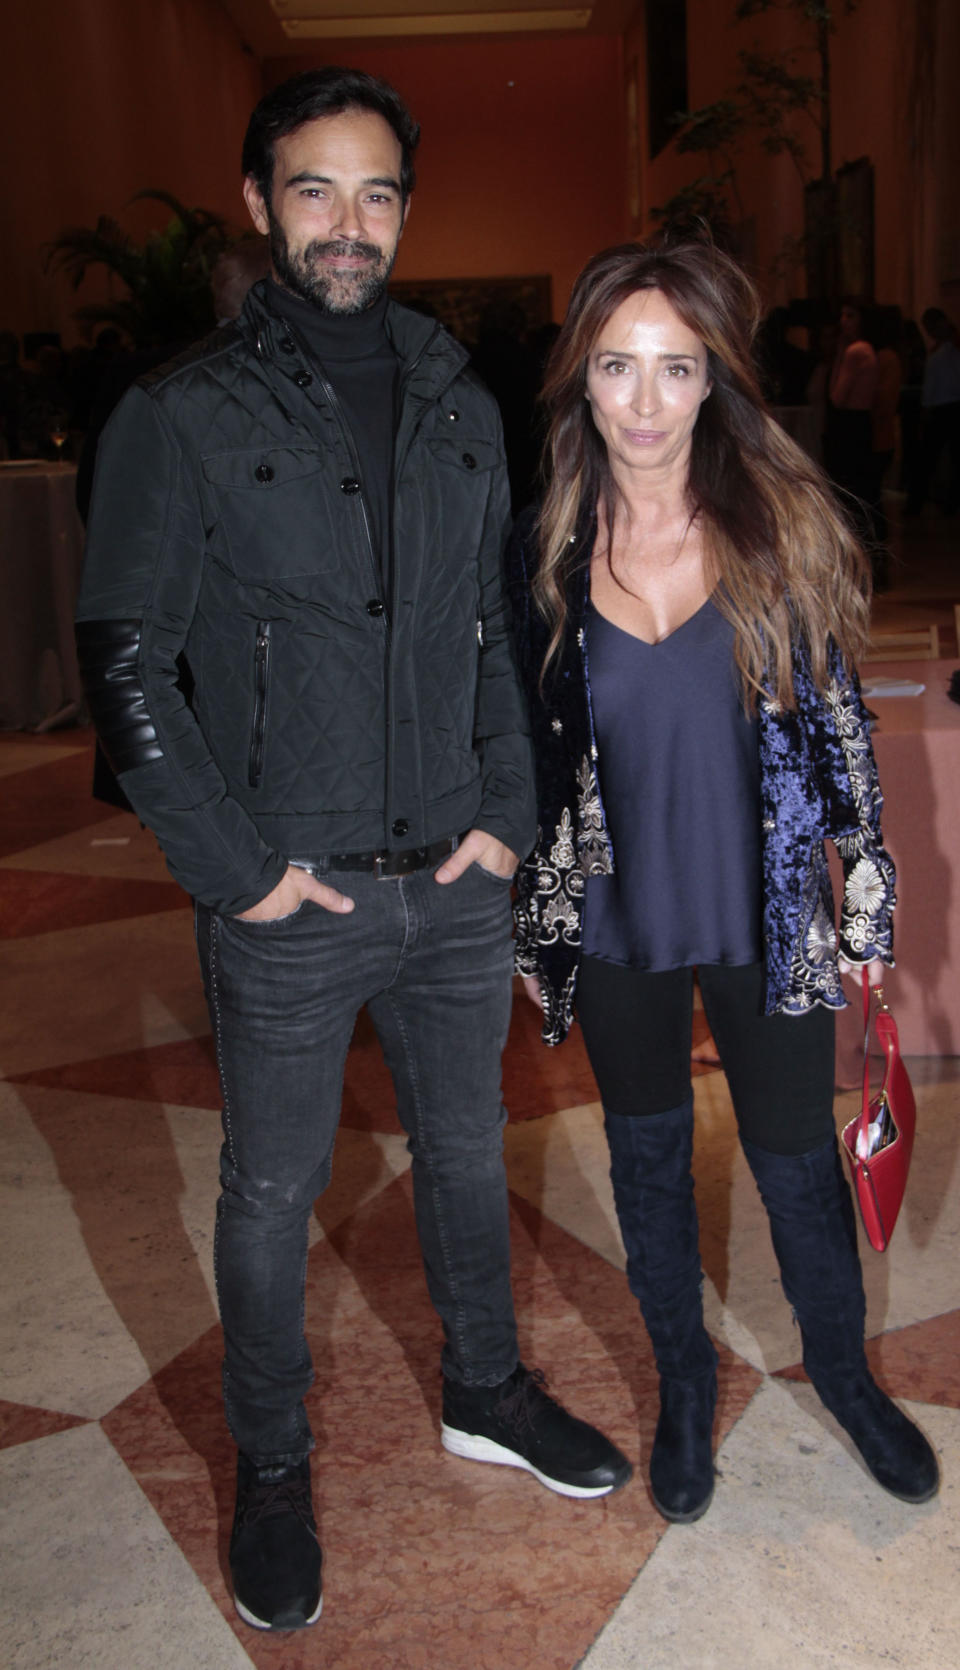 MADRID, SPAIN - NOVEMBER 20: Maria Patino and Ricardo Rodriguez attend the Smylife Collection Beauty Art III presentation at the Thyssen-Bornemisza Museum on November 20, 2017 in Madrid, Spain.  (Photo by Europa Press/Europa Press via Getty Images)